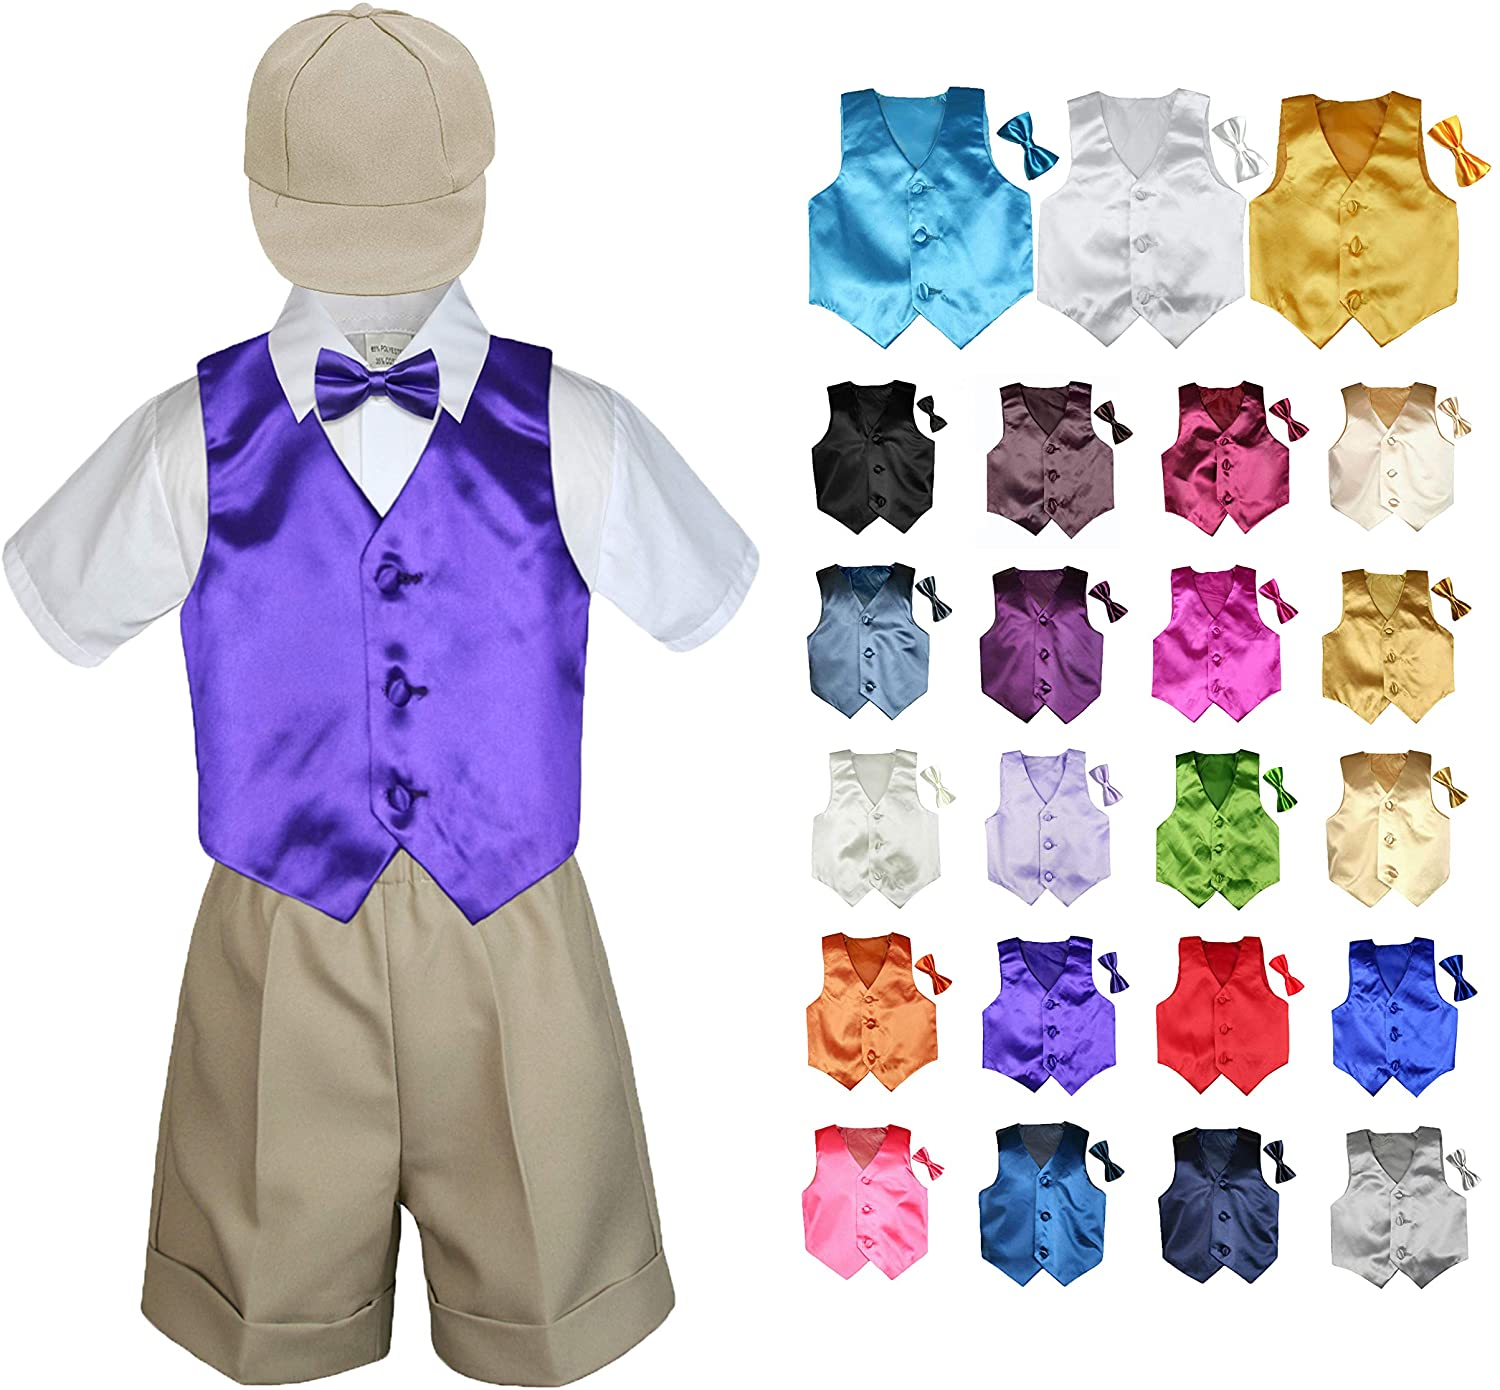 5 Pieces Formal Wedding Color Satin Vest & Bow tie Shirt W/Hat Khaki Shorts Set Baby Boy Toddler Sm-4T (3T, Red)